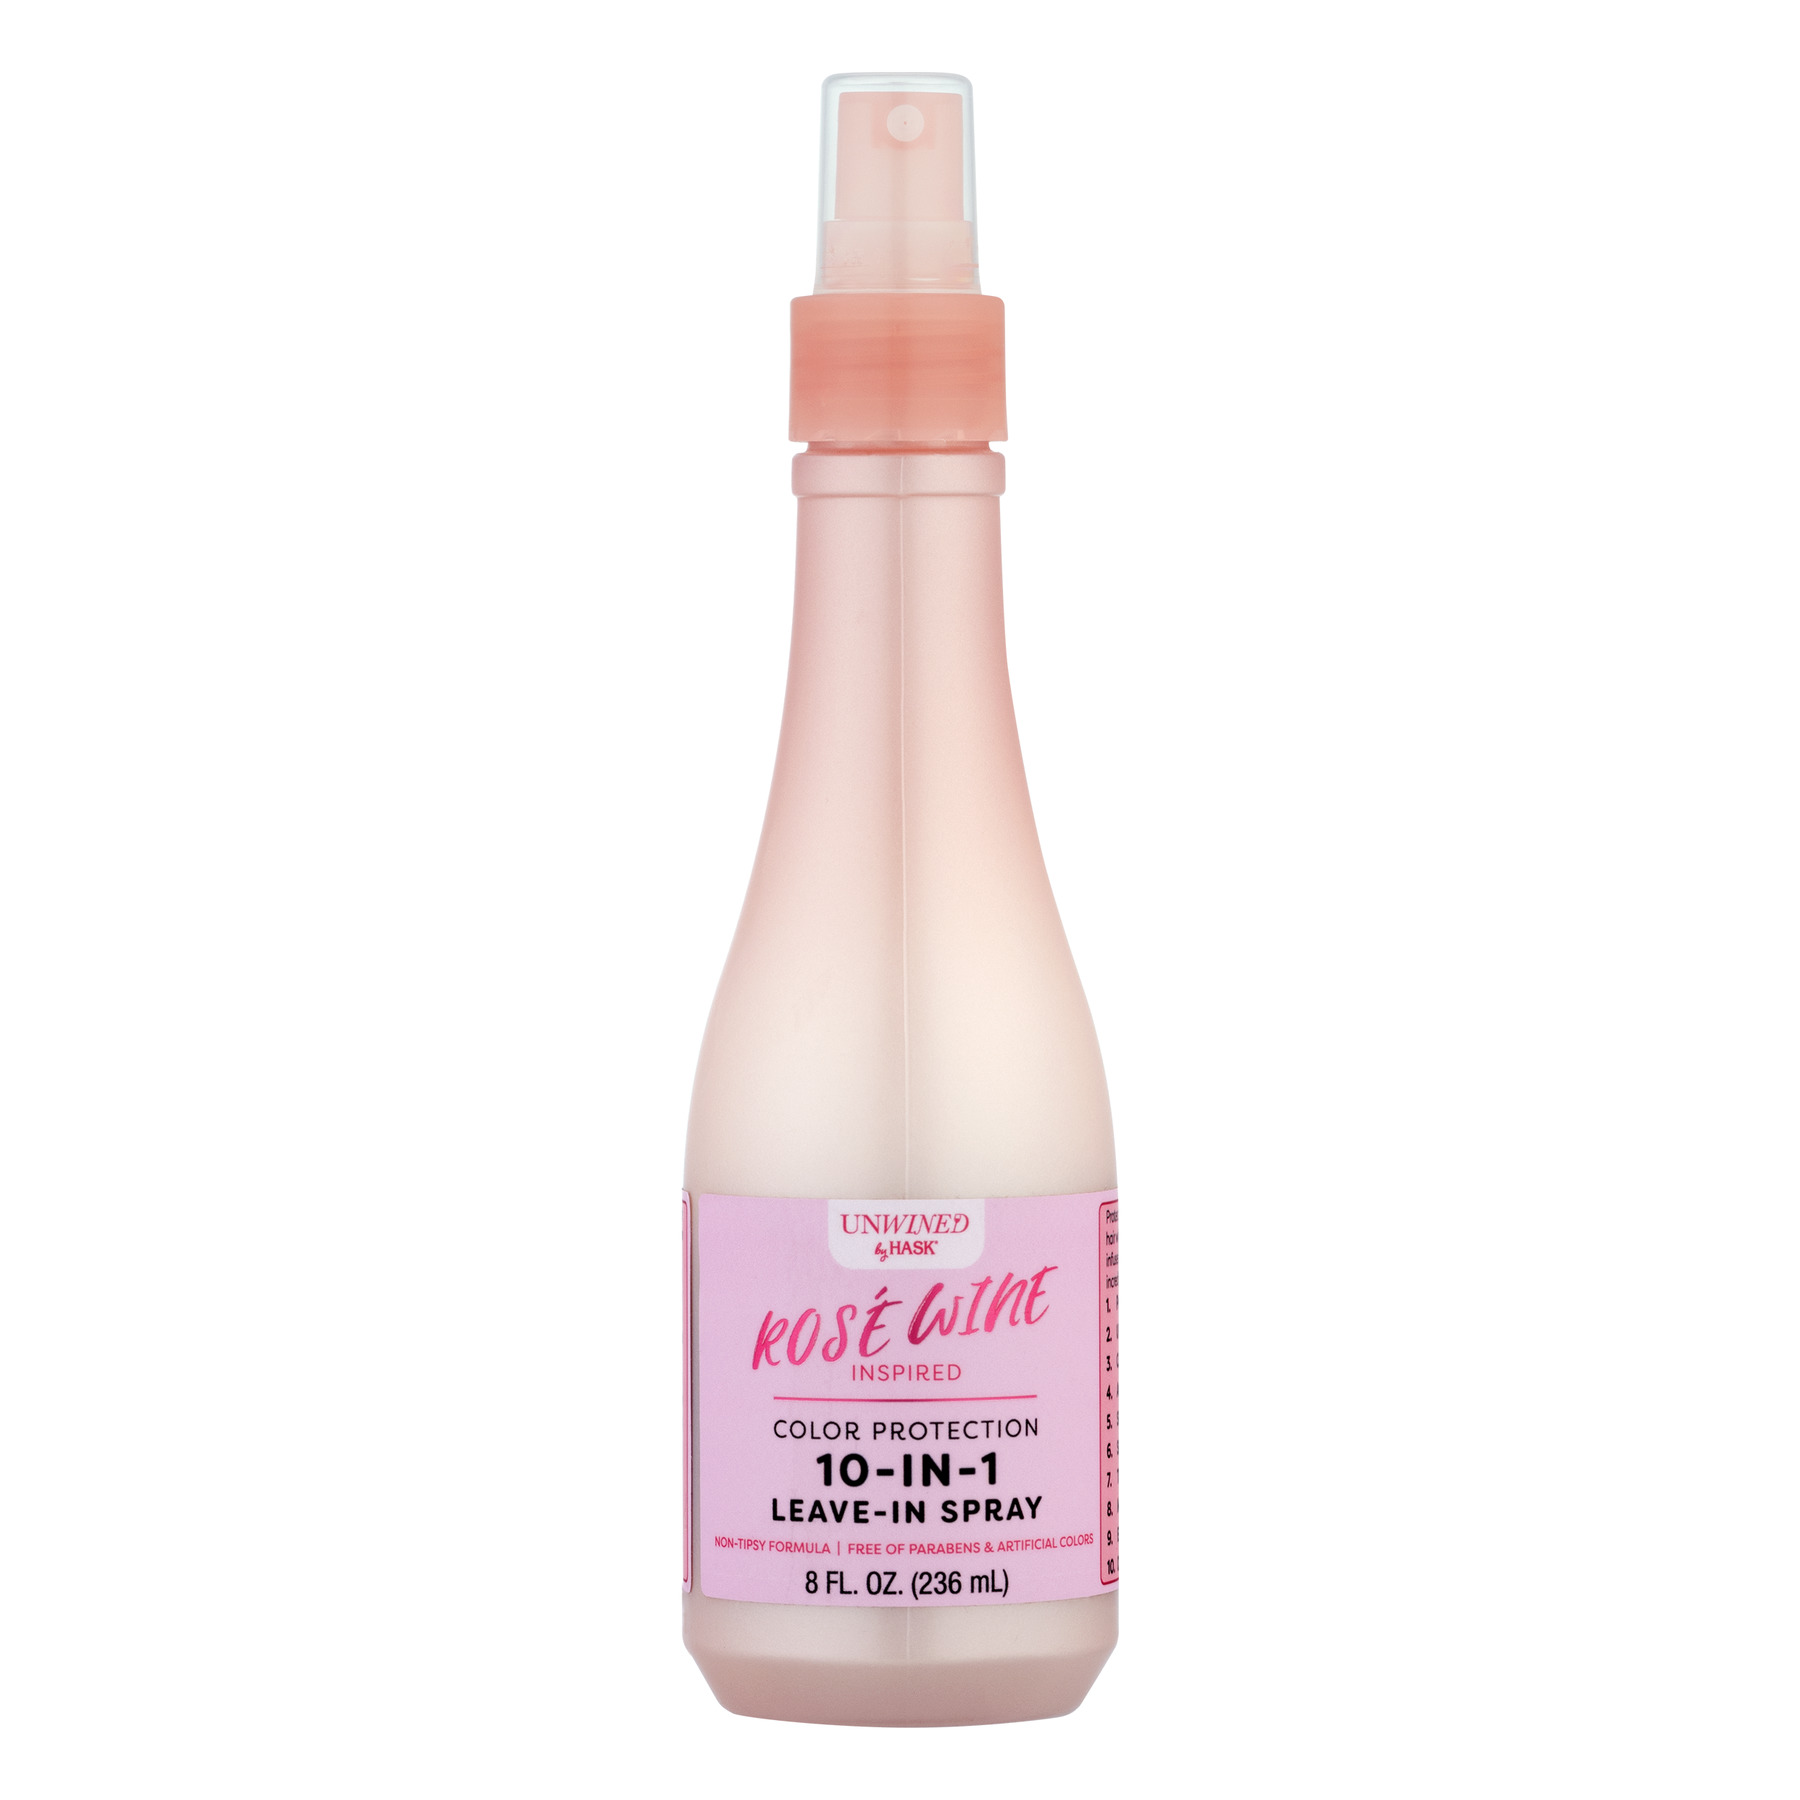 Hask Unwined Color Protection 10-In-1 Leave-In Spray Rose Wine, 8.0 FL OZ